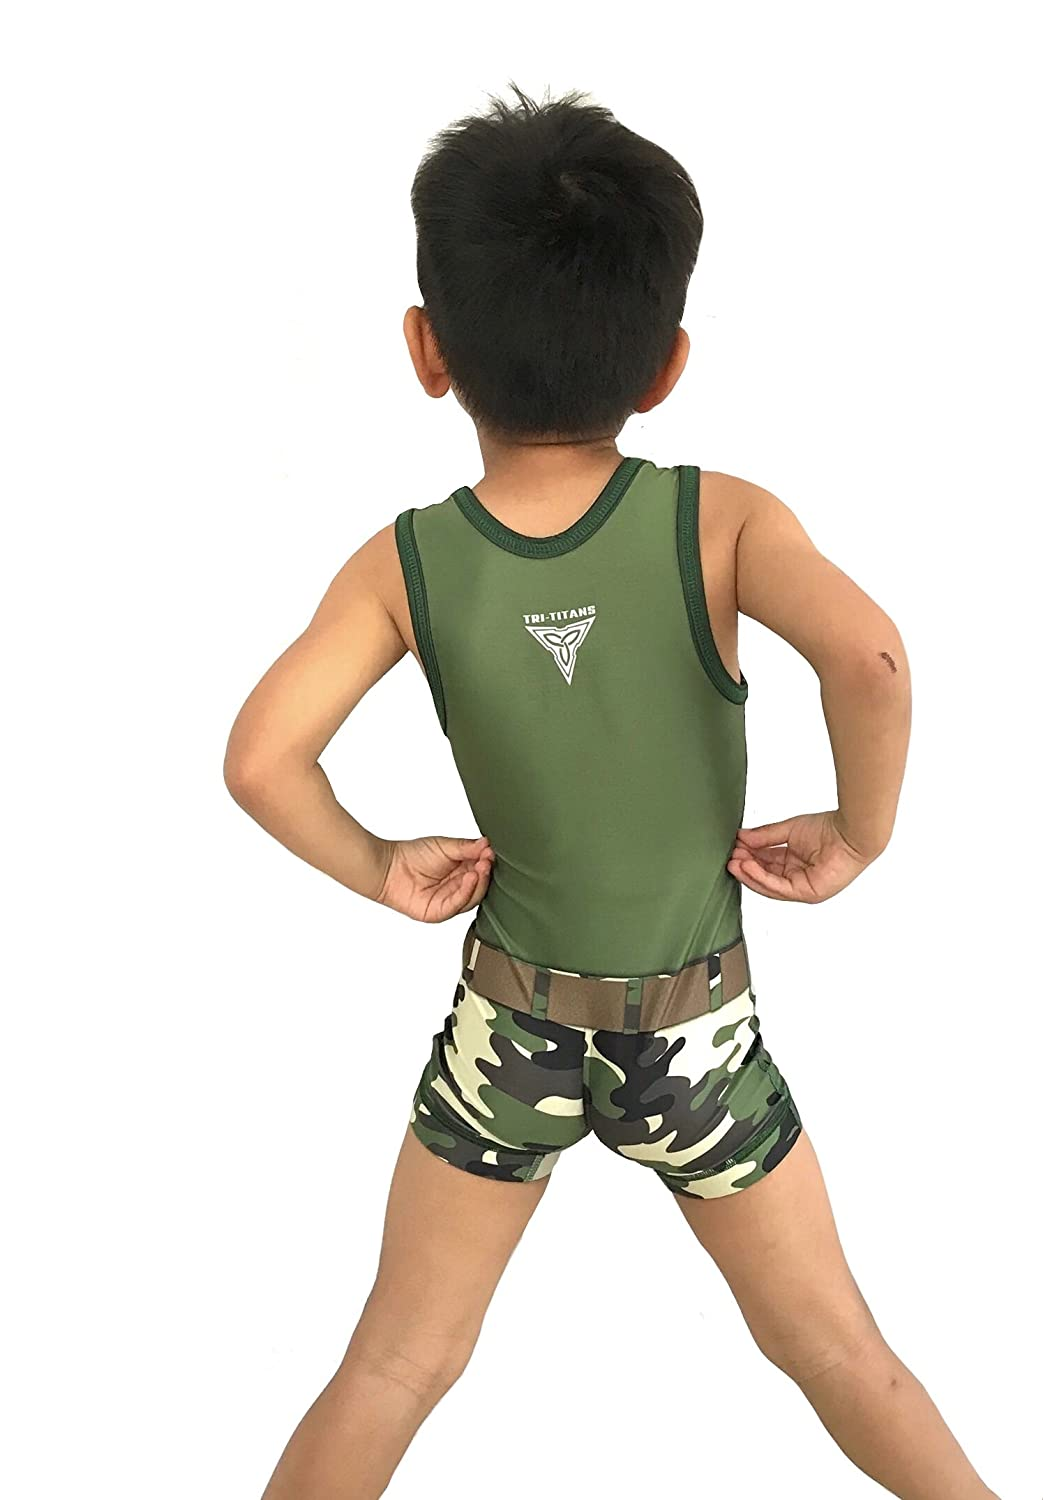 TRI-TITANS Guile Street Fighter Wrestling Singlet Folkstyle Youths and Adult Mens Sizes